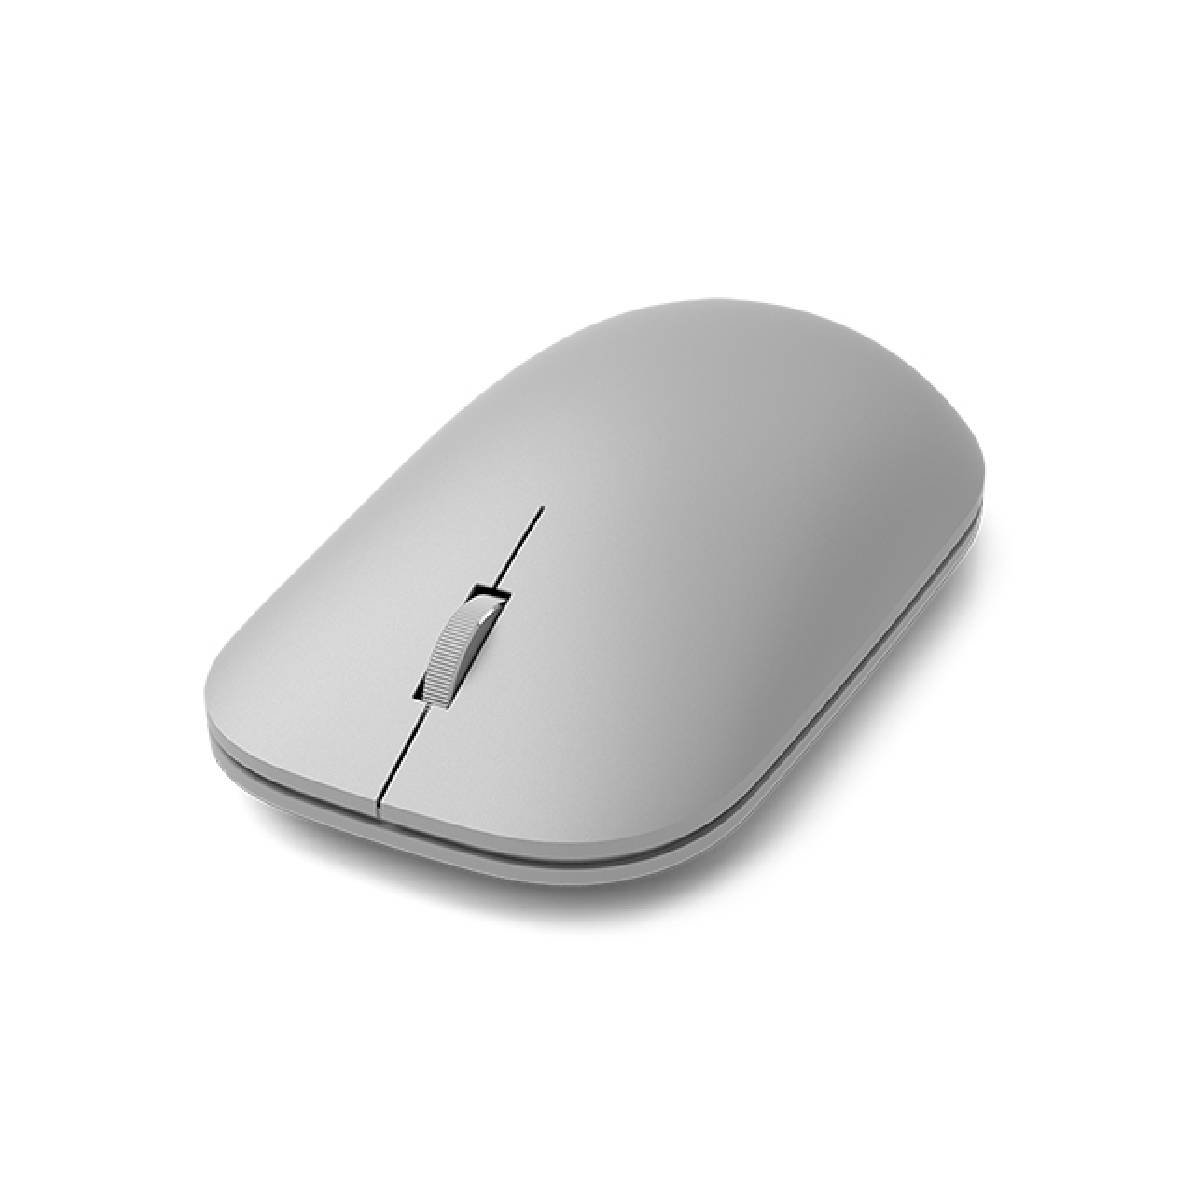 MS Modern Mouse Bluetooth GRAY